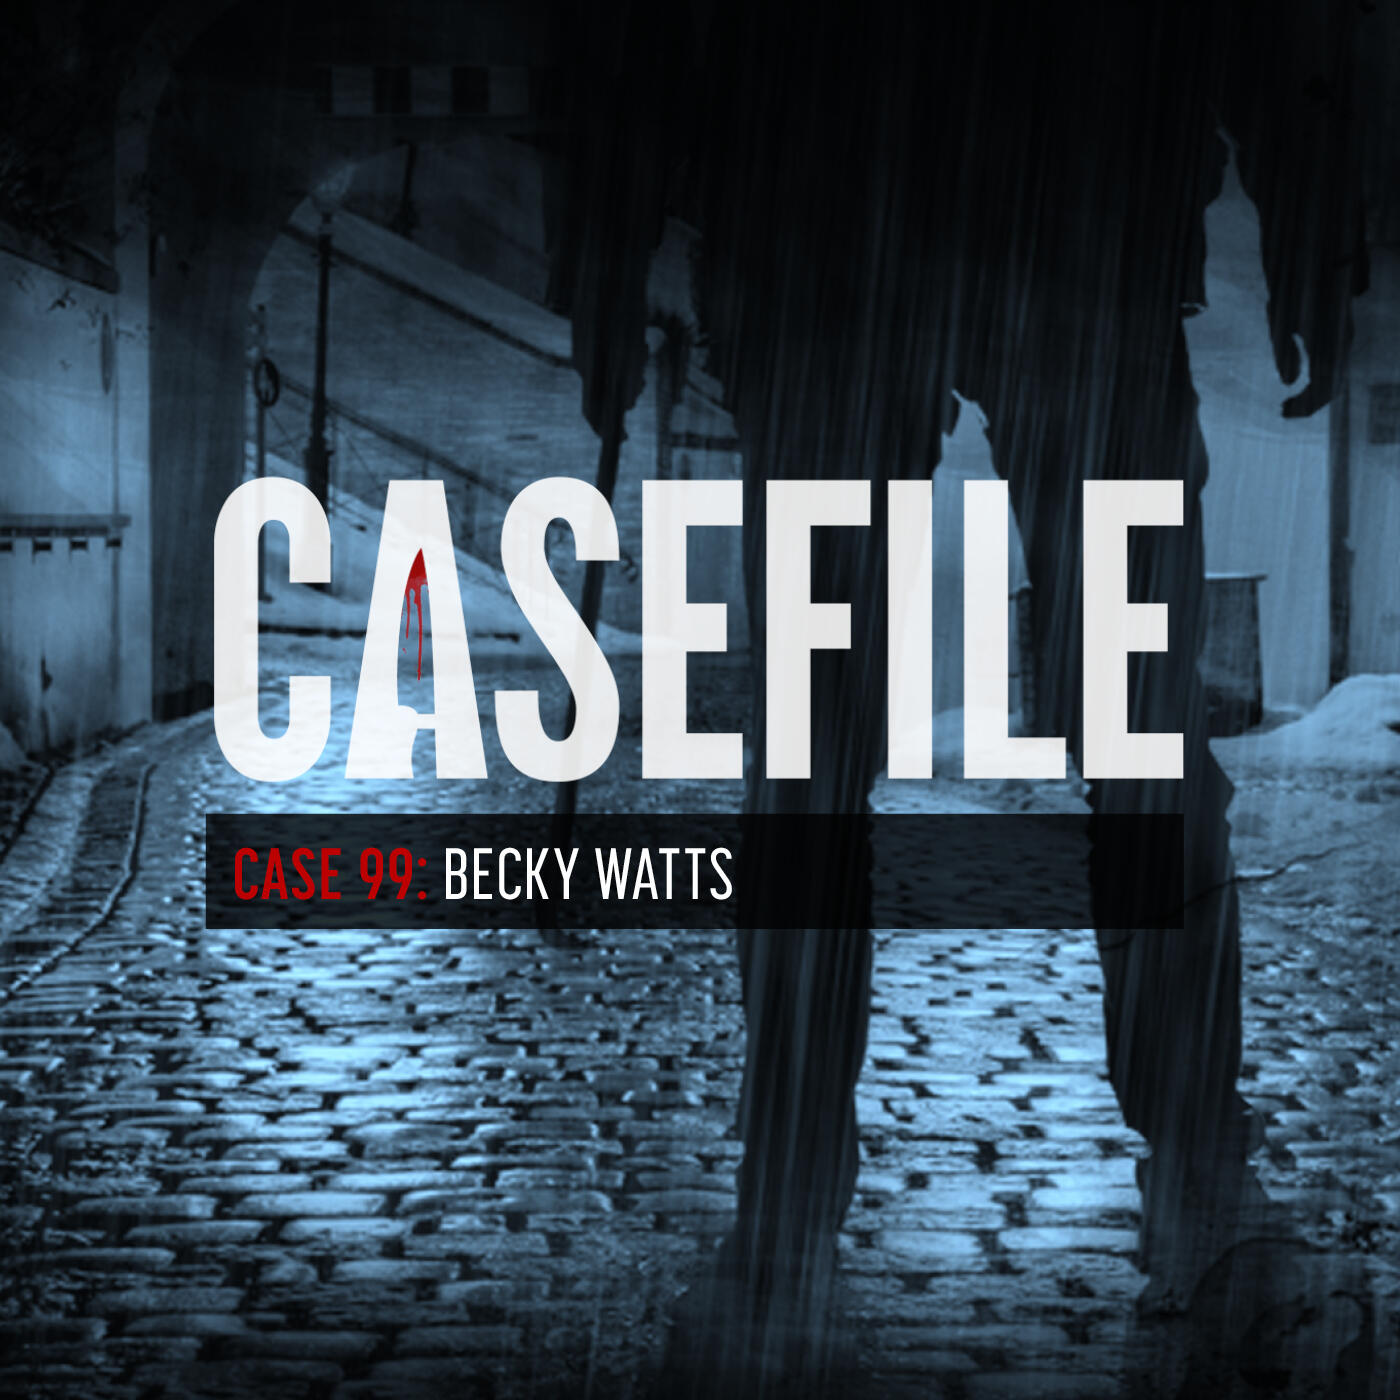 Case 99: Becky Watts